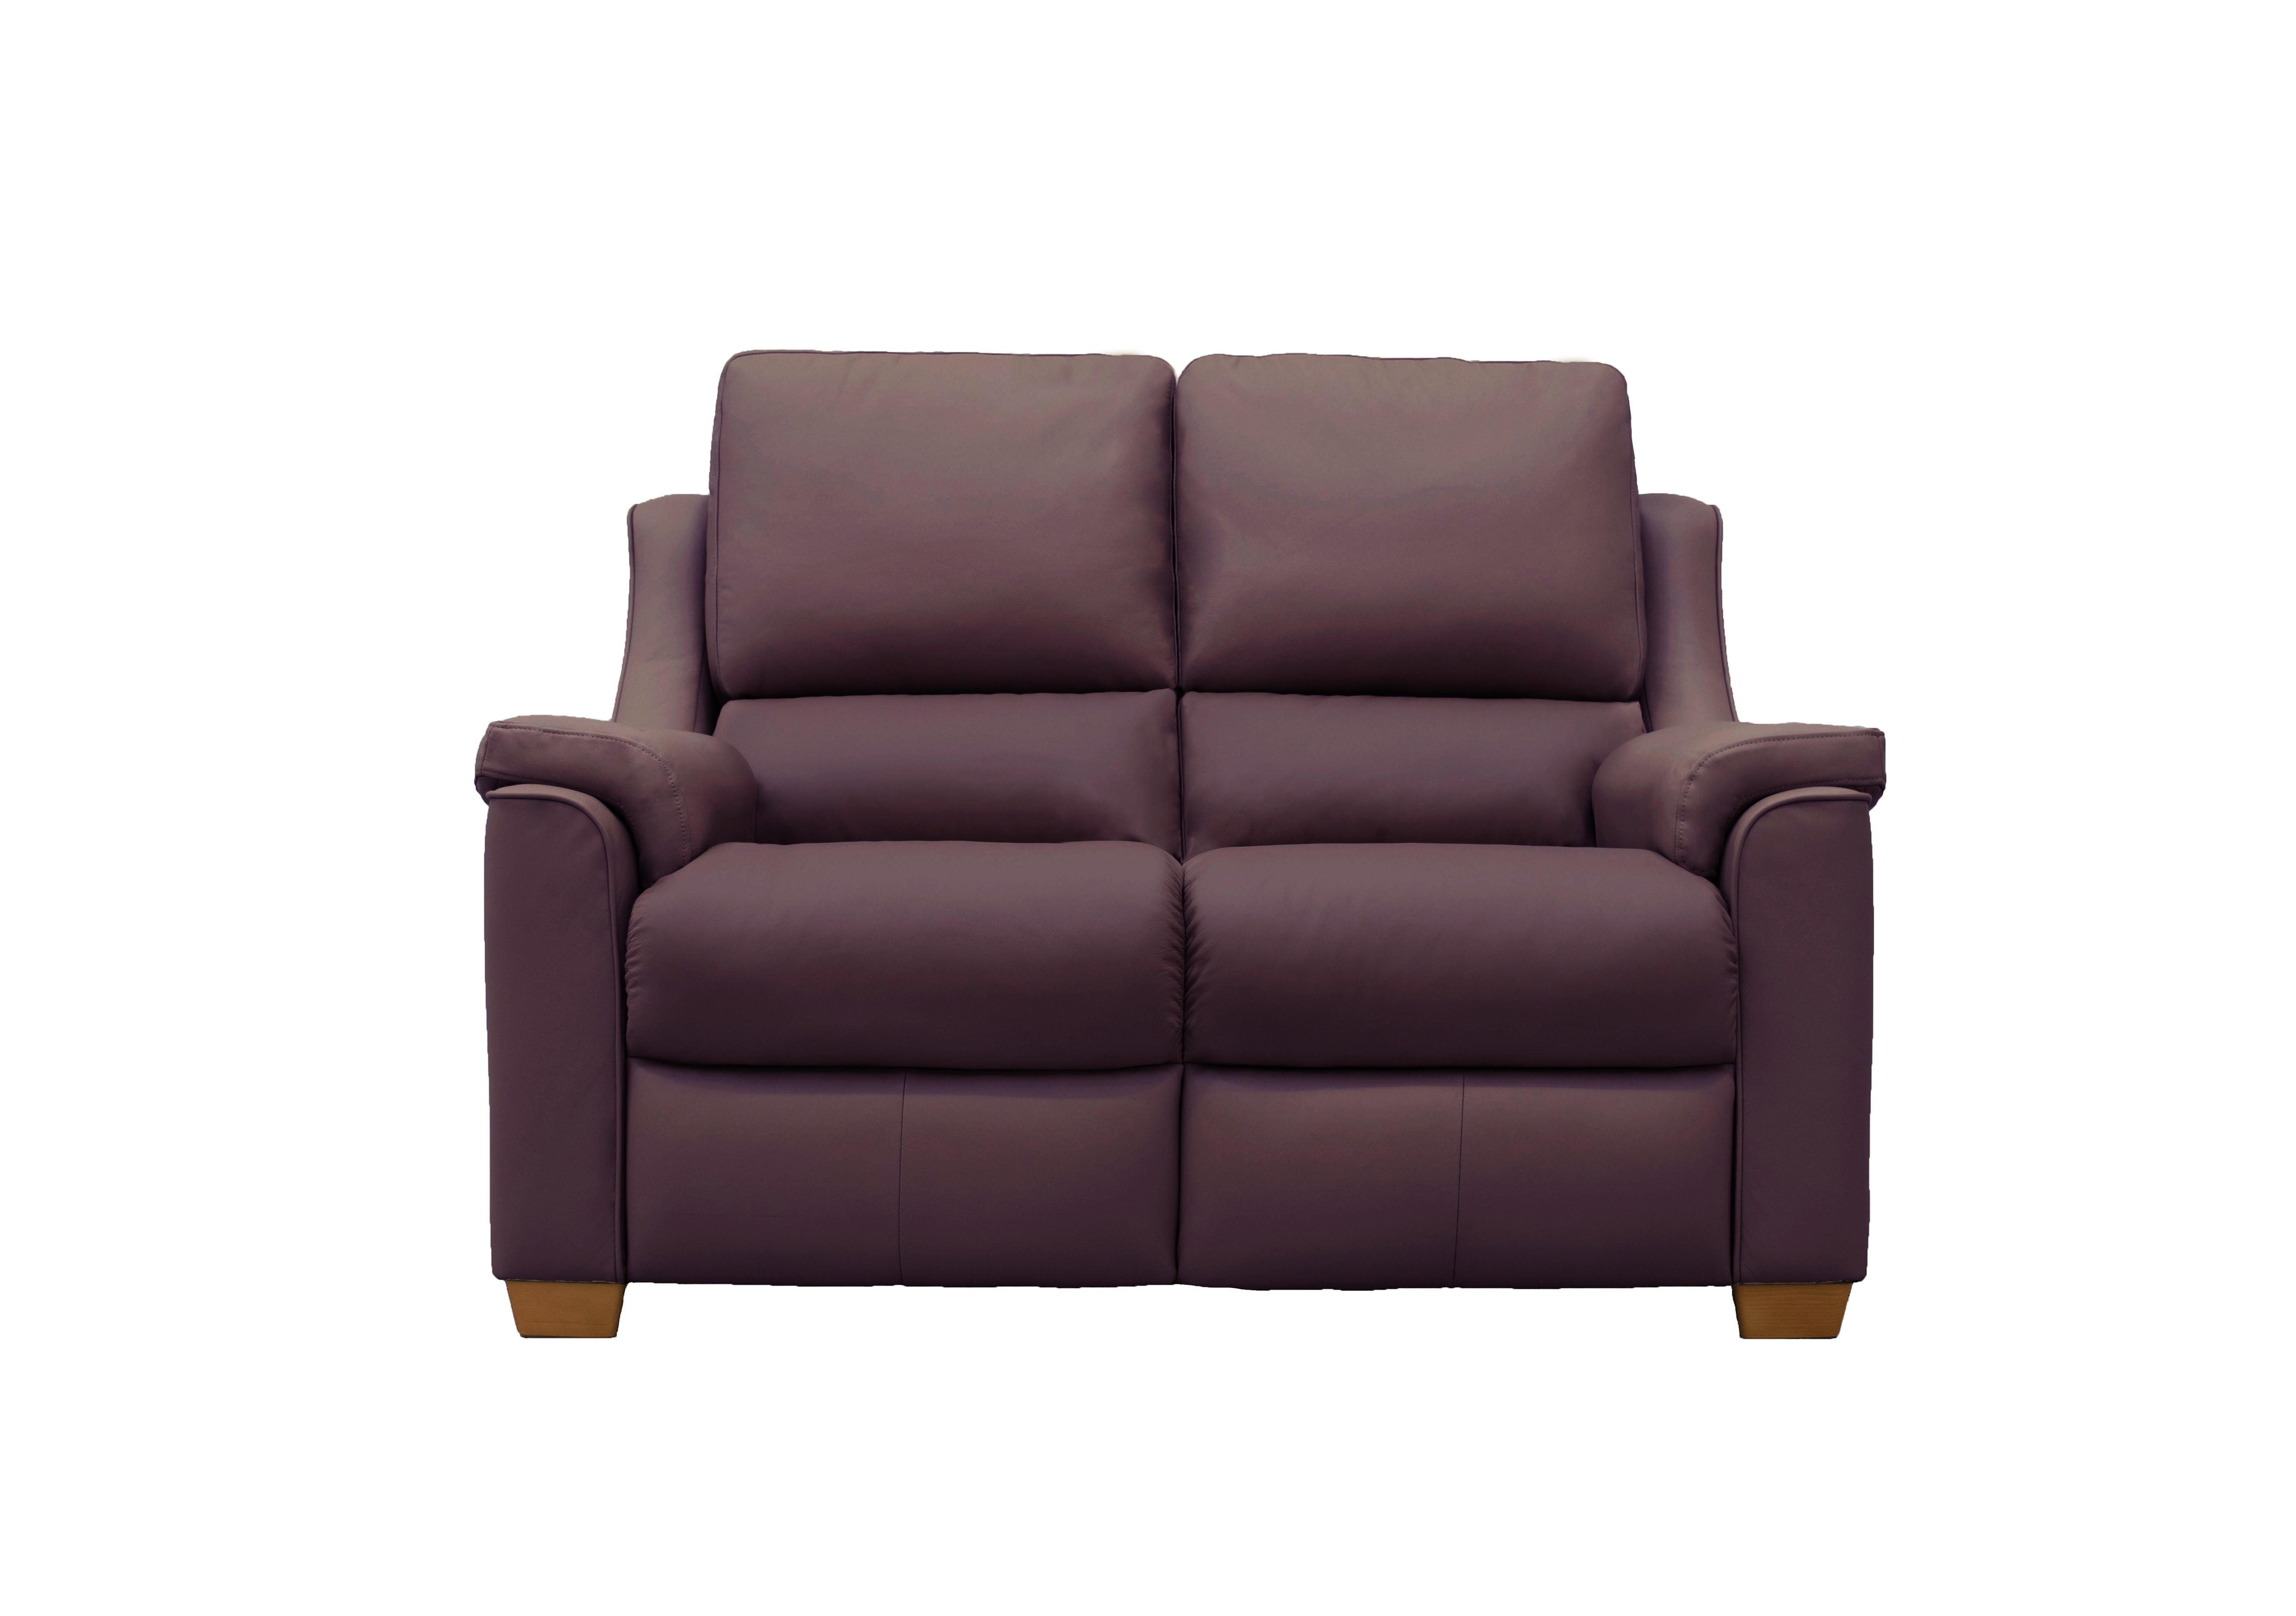 albany leather sofa old fashioned looking sofas 2 seater recliner parker knoll furniture village